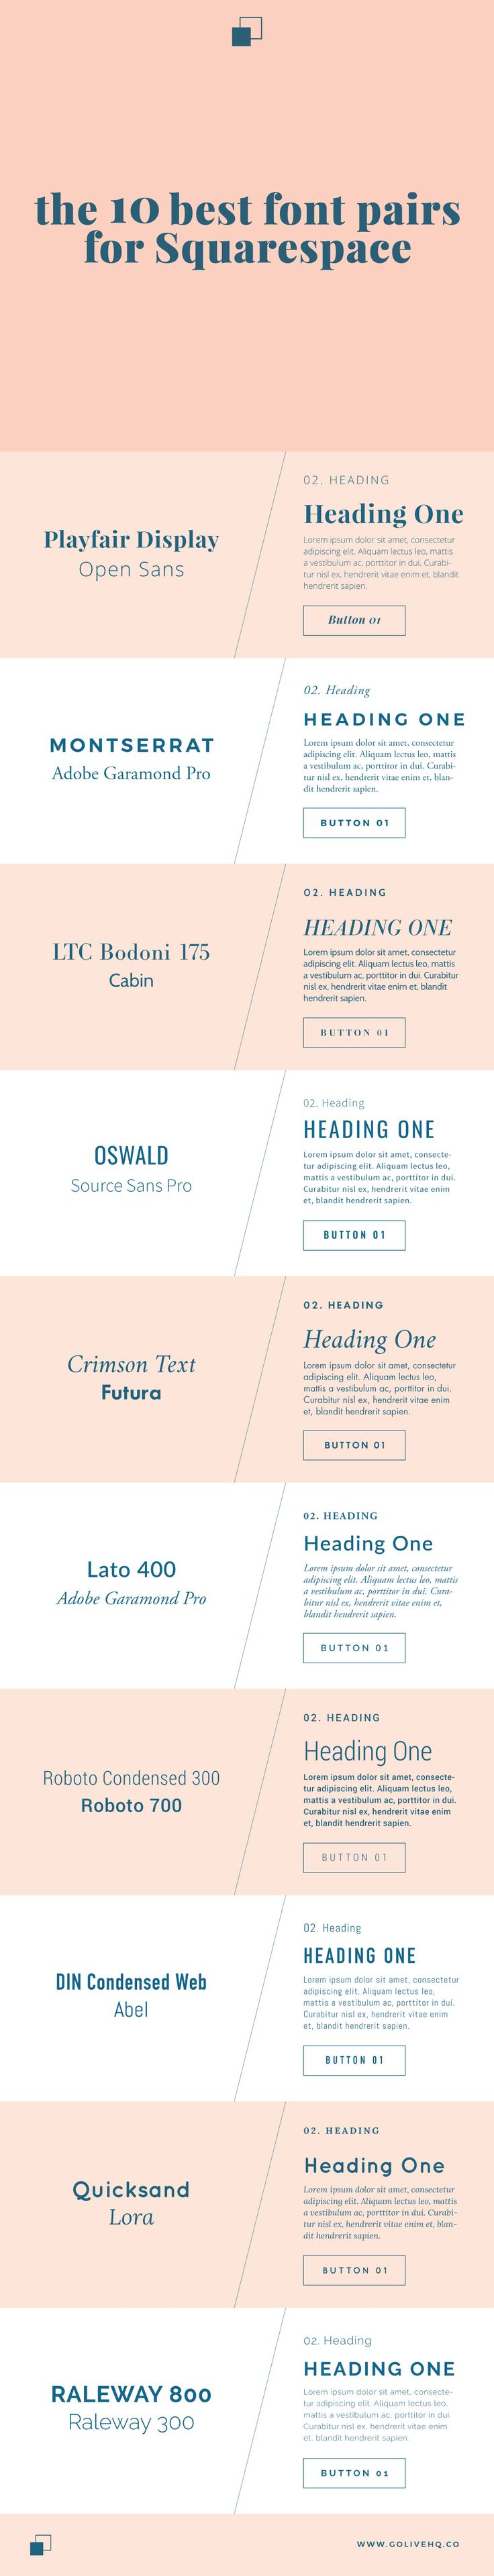 the 10 best font pairs for squarespace  |   Promisetangeman.com